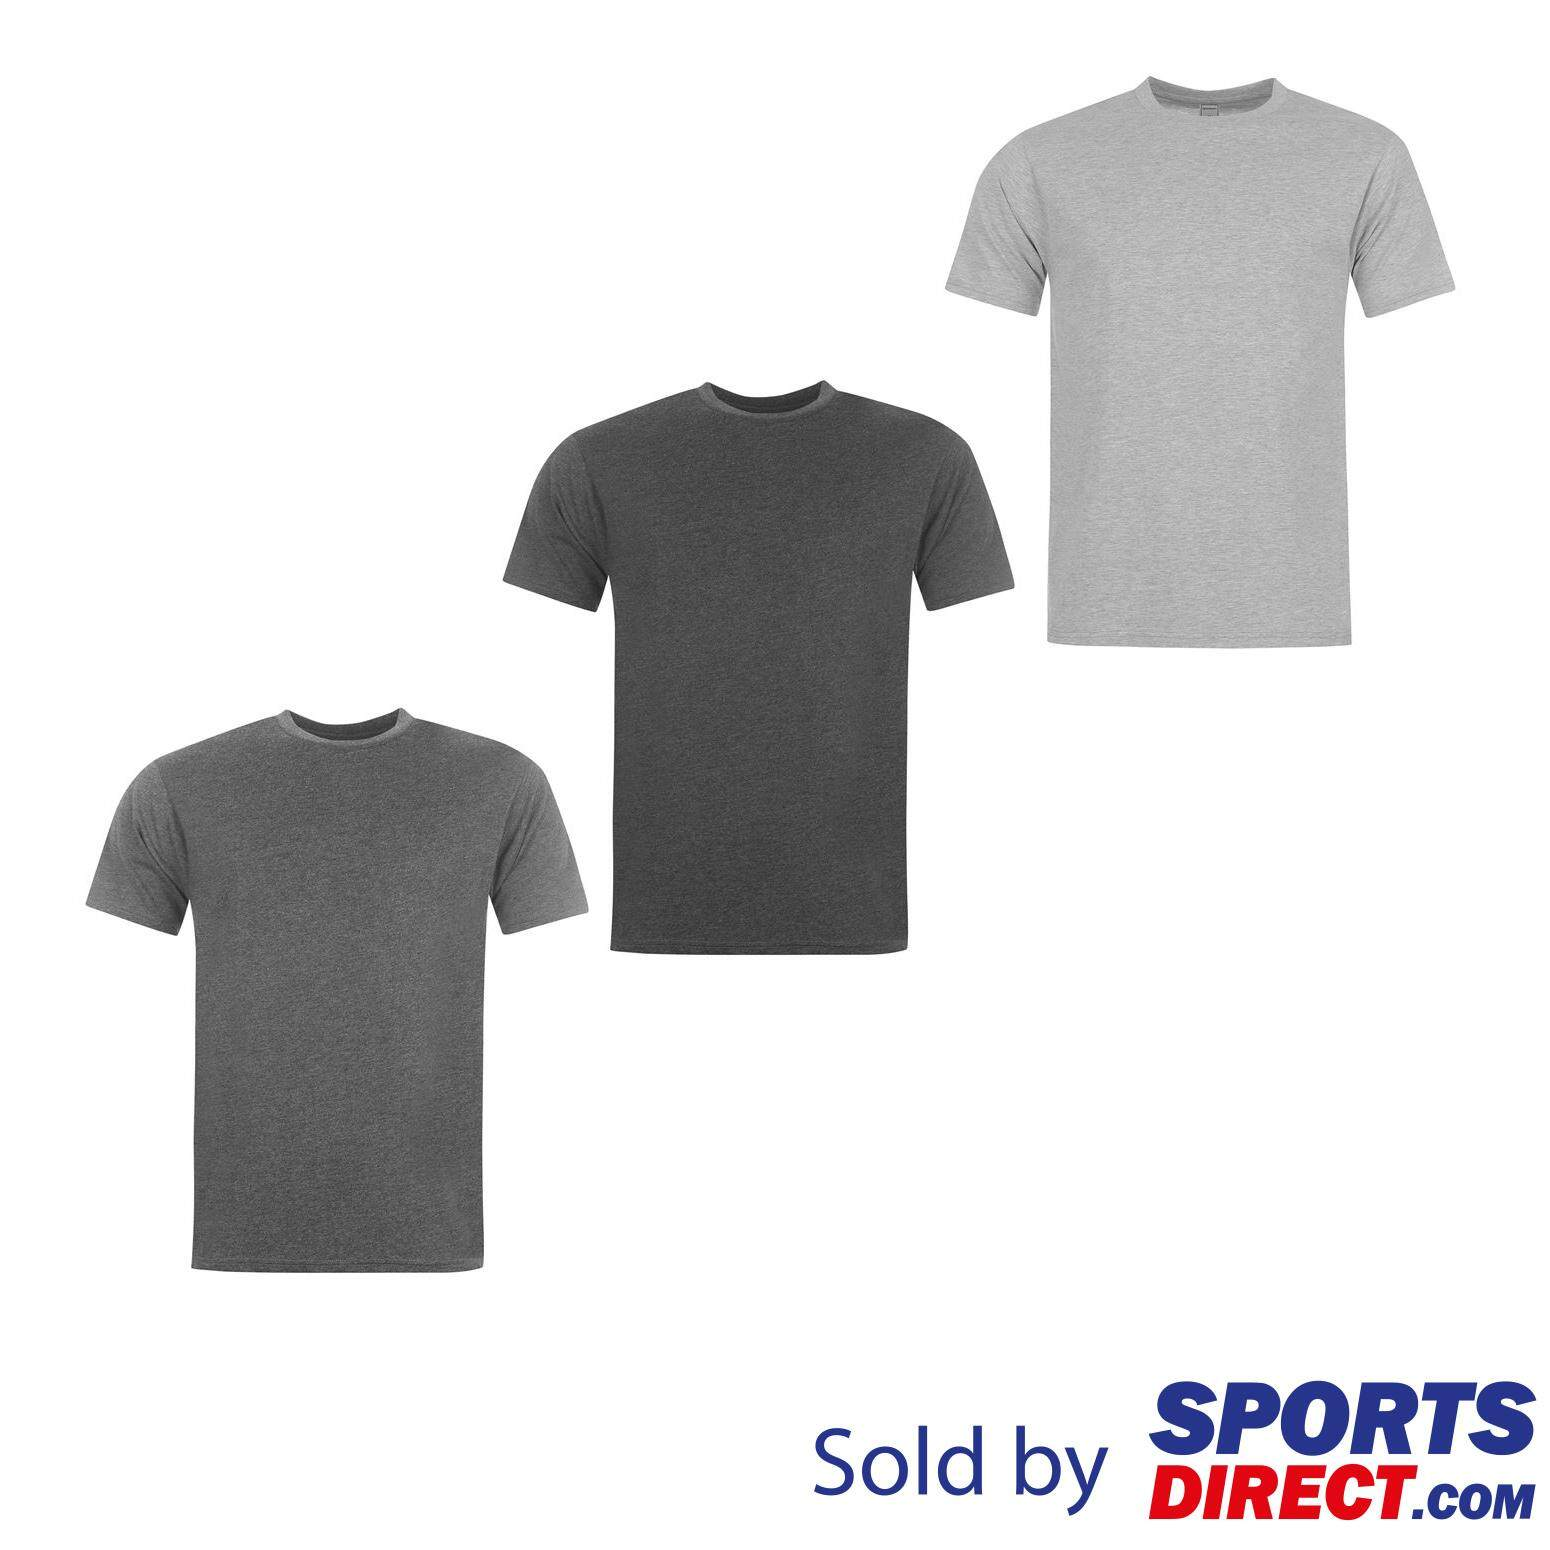 1492934b Donnay 3 Pack T Shirts Mens (Grey Marl/Charcoal Marl/Black)